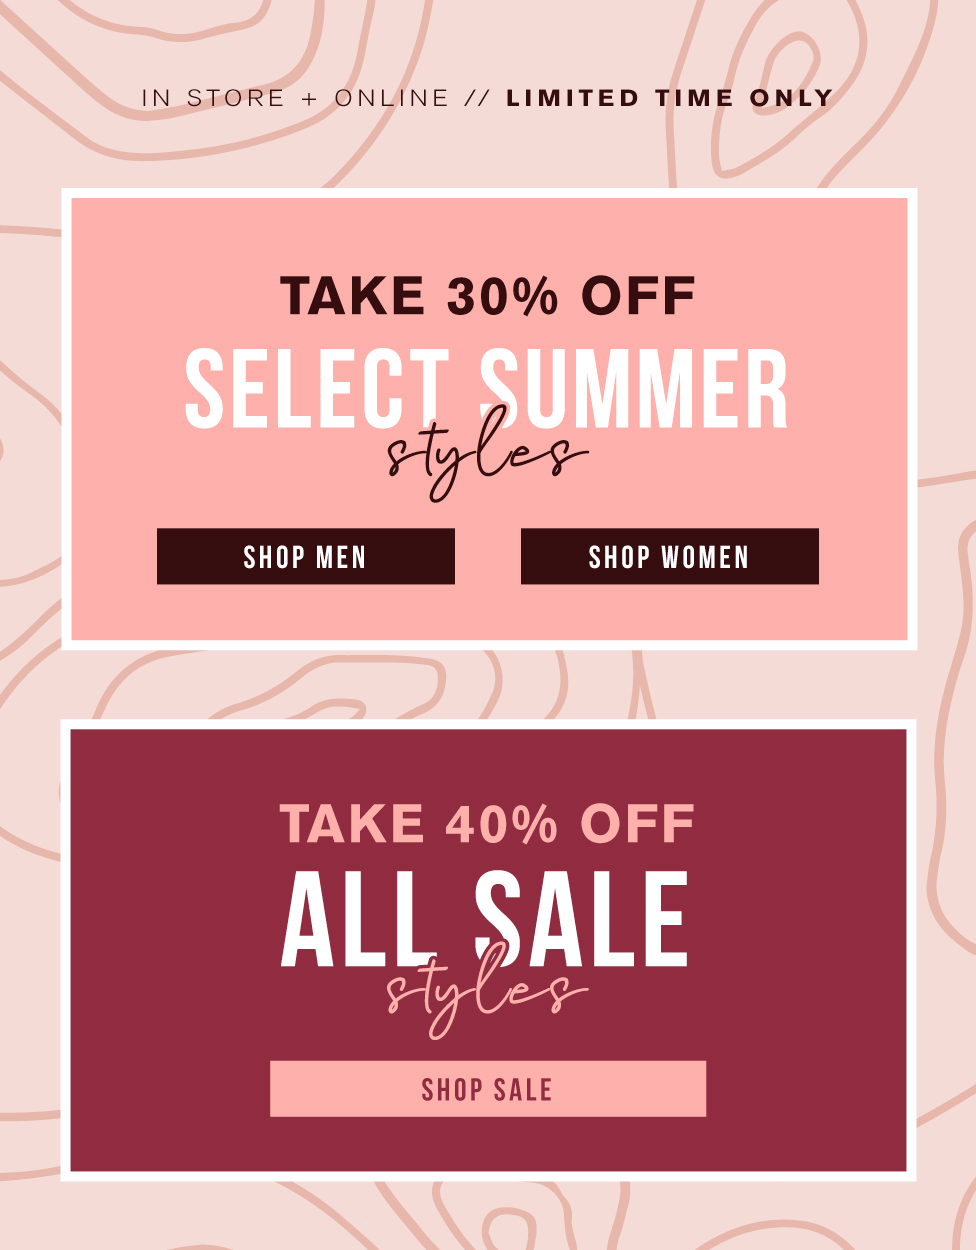 TAKE 30% OFF SELECT SUMMER STYLES - TAKE 40% OFF ALL SALE STYLES